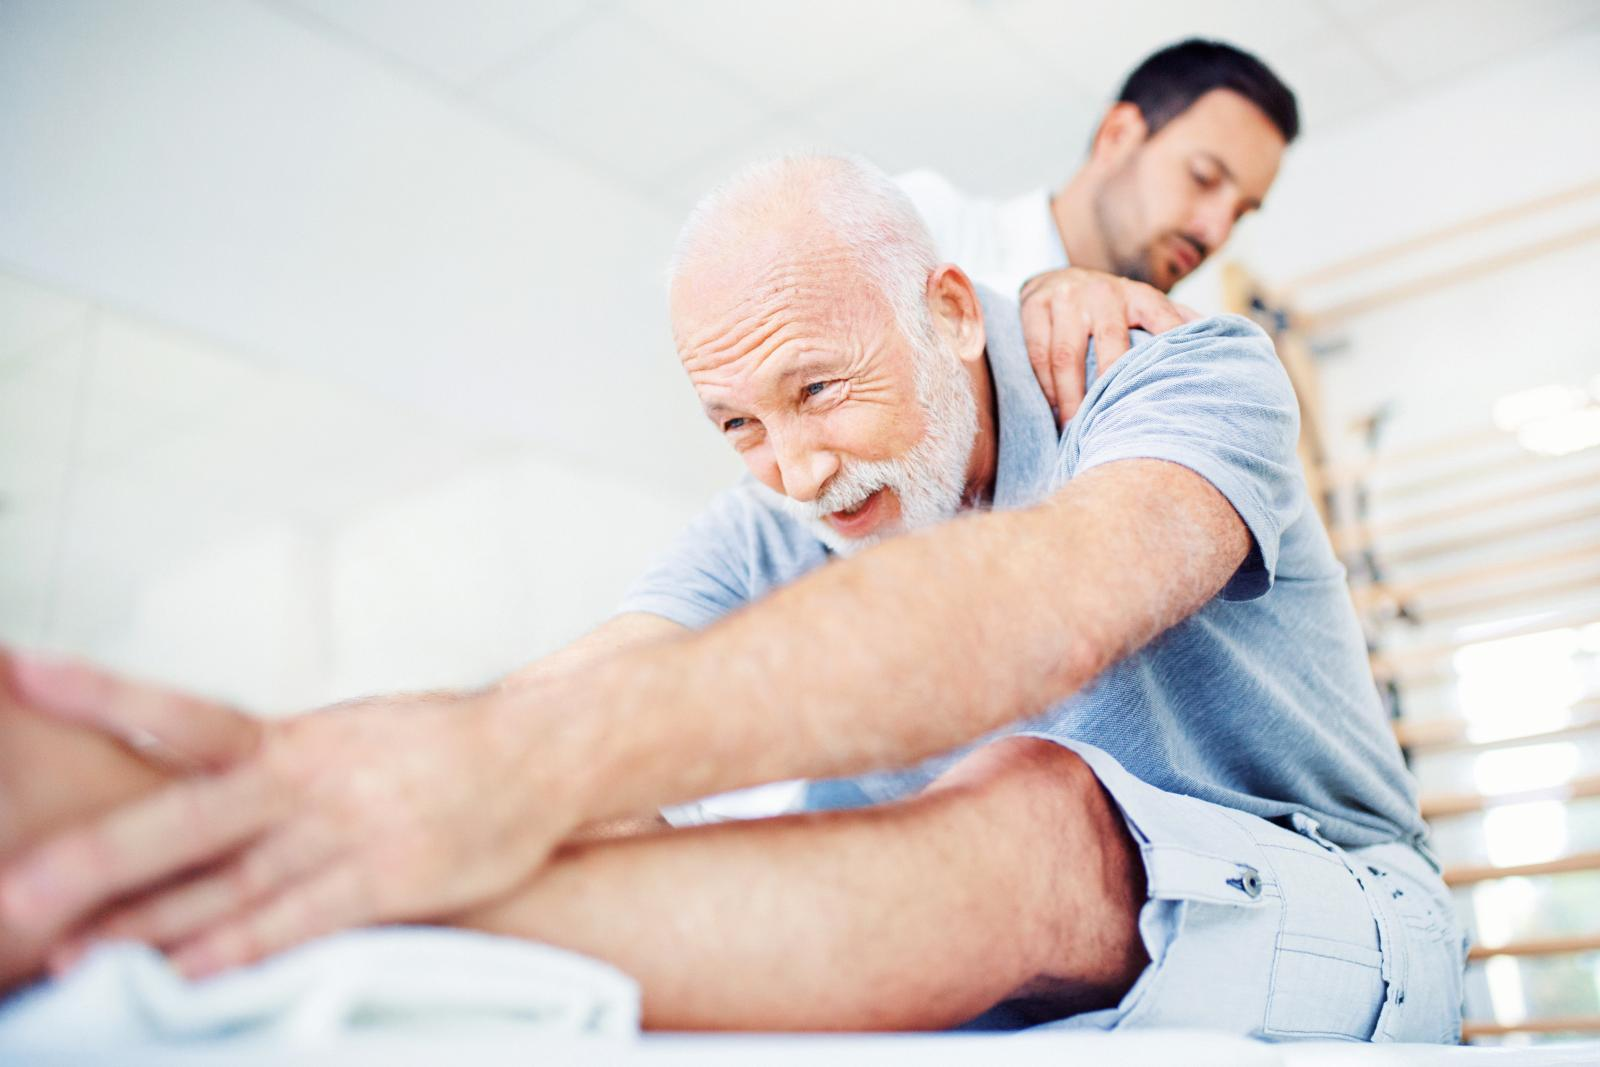 Senior gentleman having some back pain and a doctor